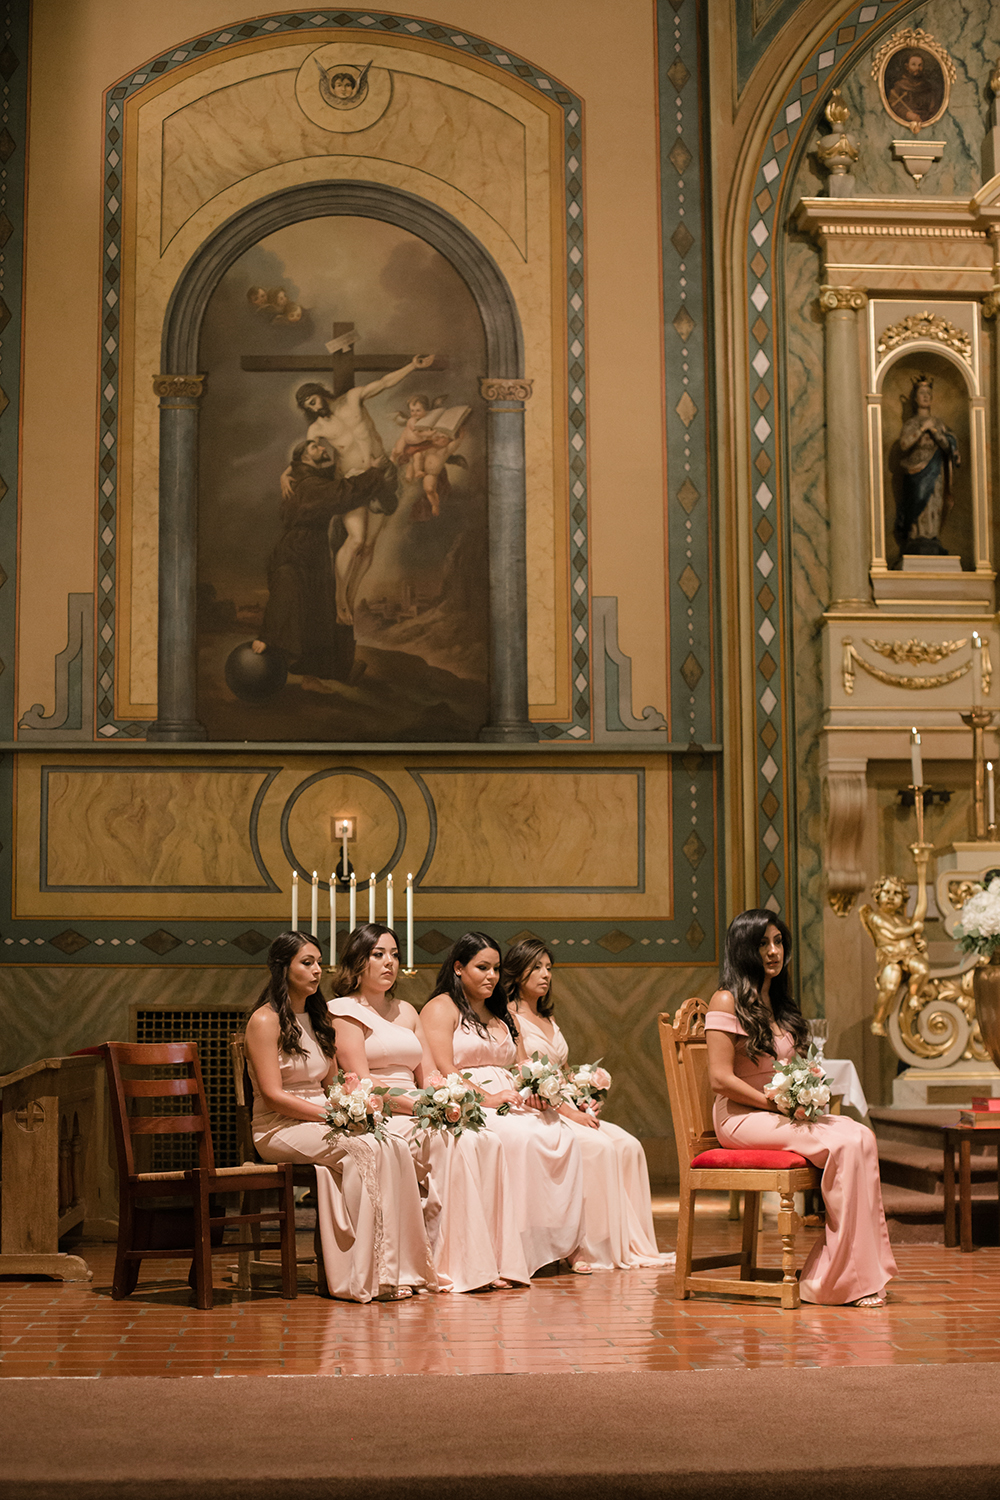 Group of bridesmaids sitting at the altar during wedding ceremony.